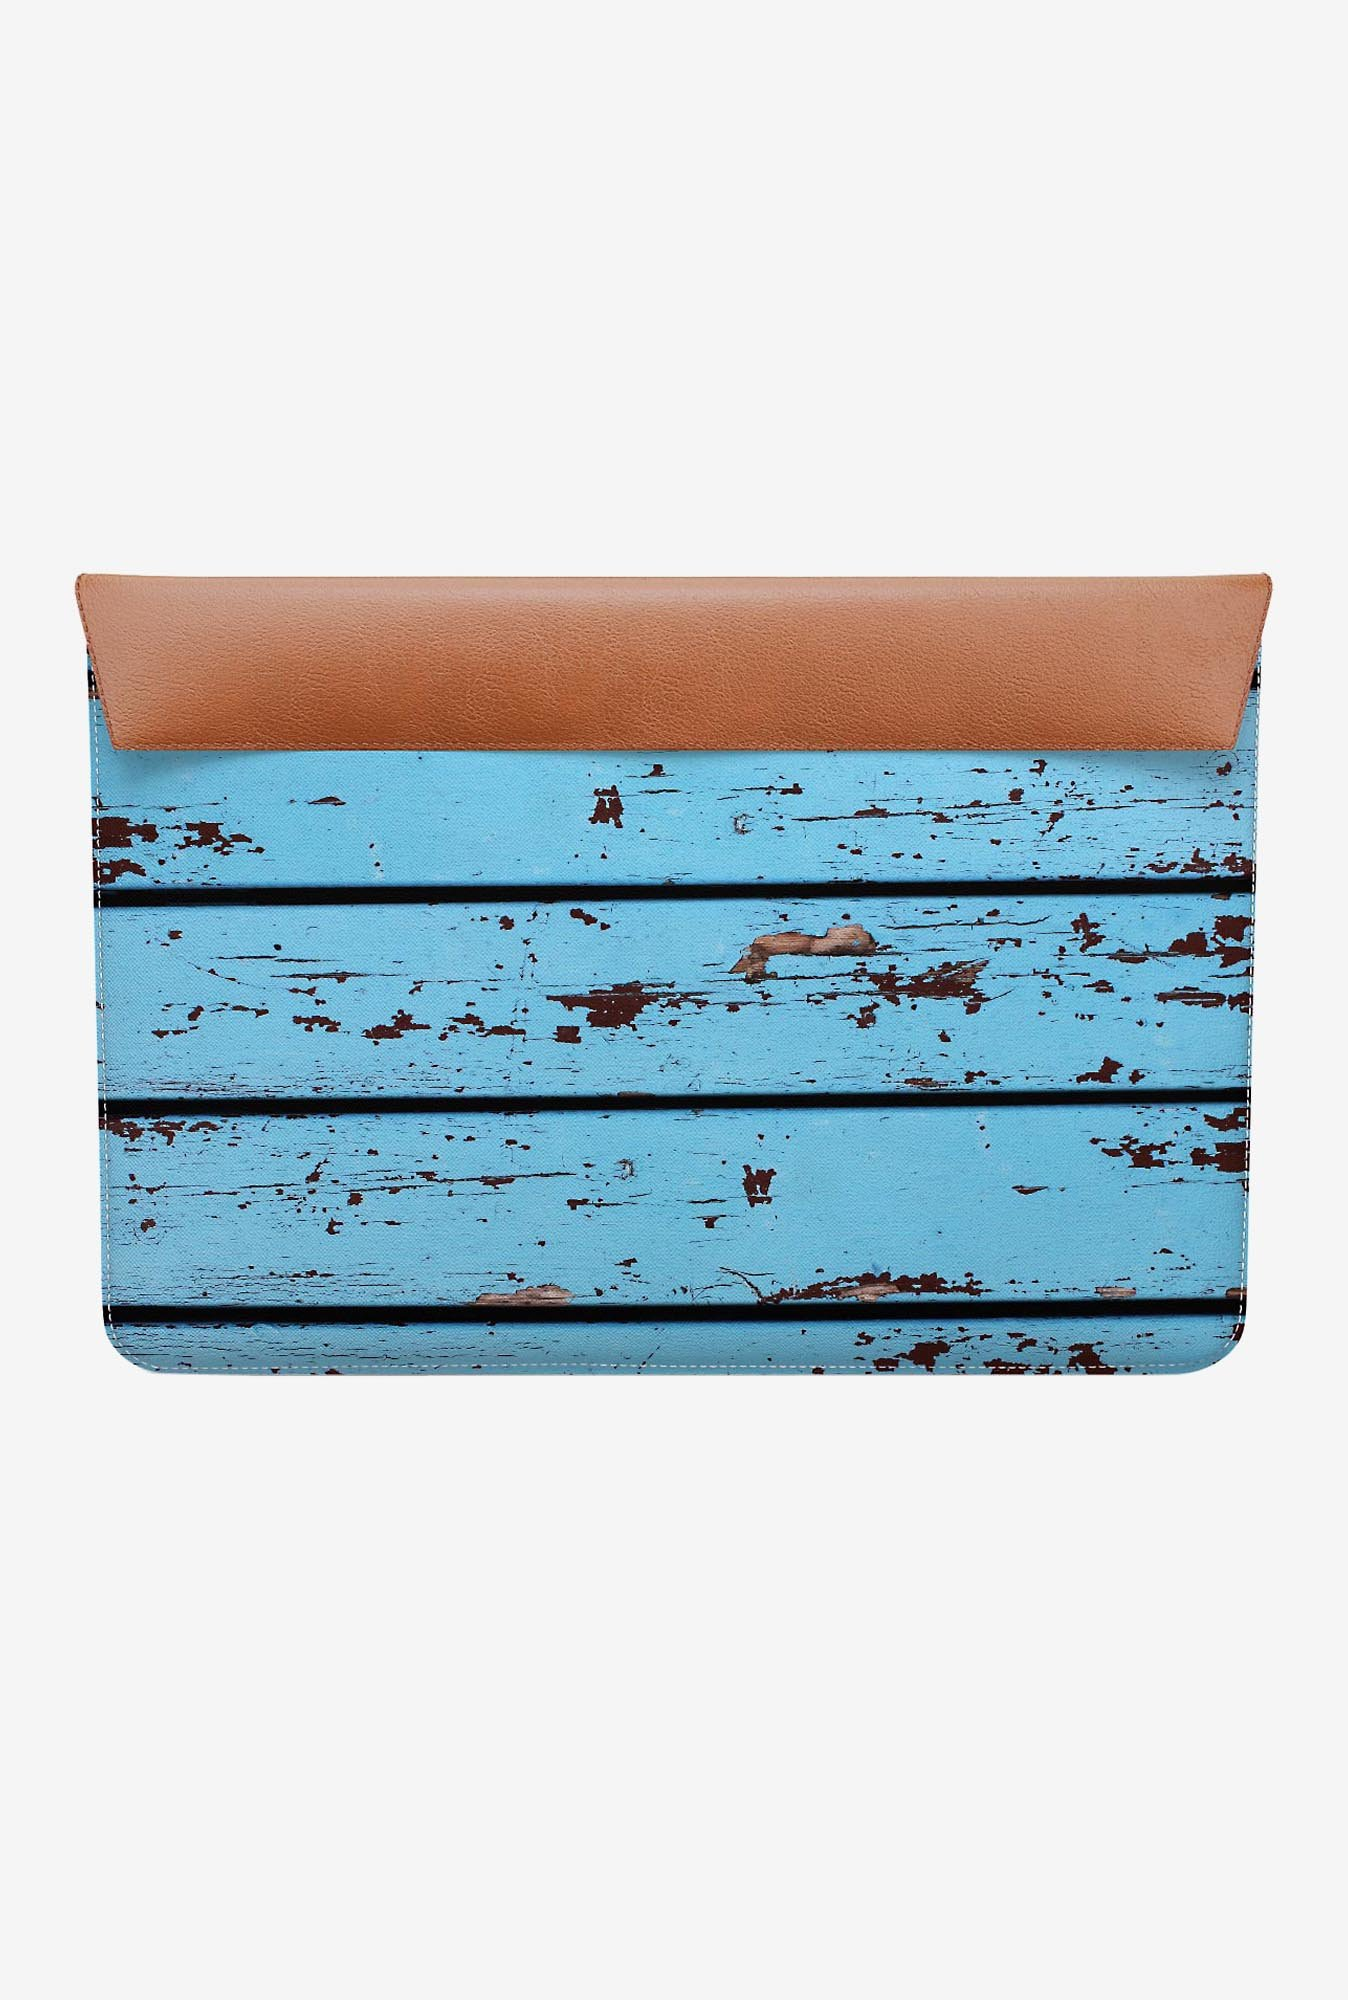 DailyObjects Wooden Planks MacBook Pro 13 Envelope Sleeve